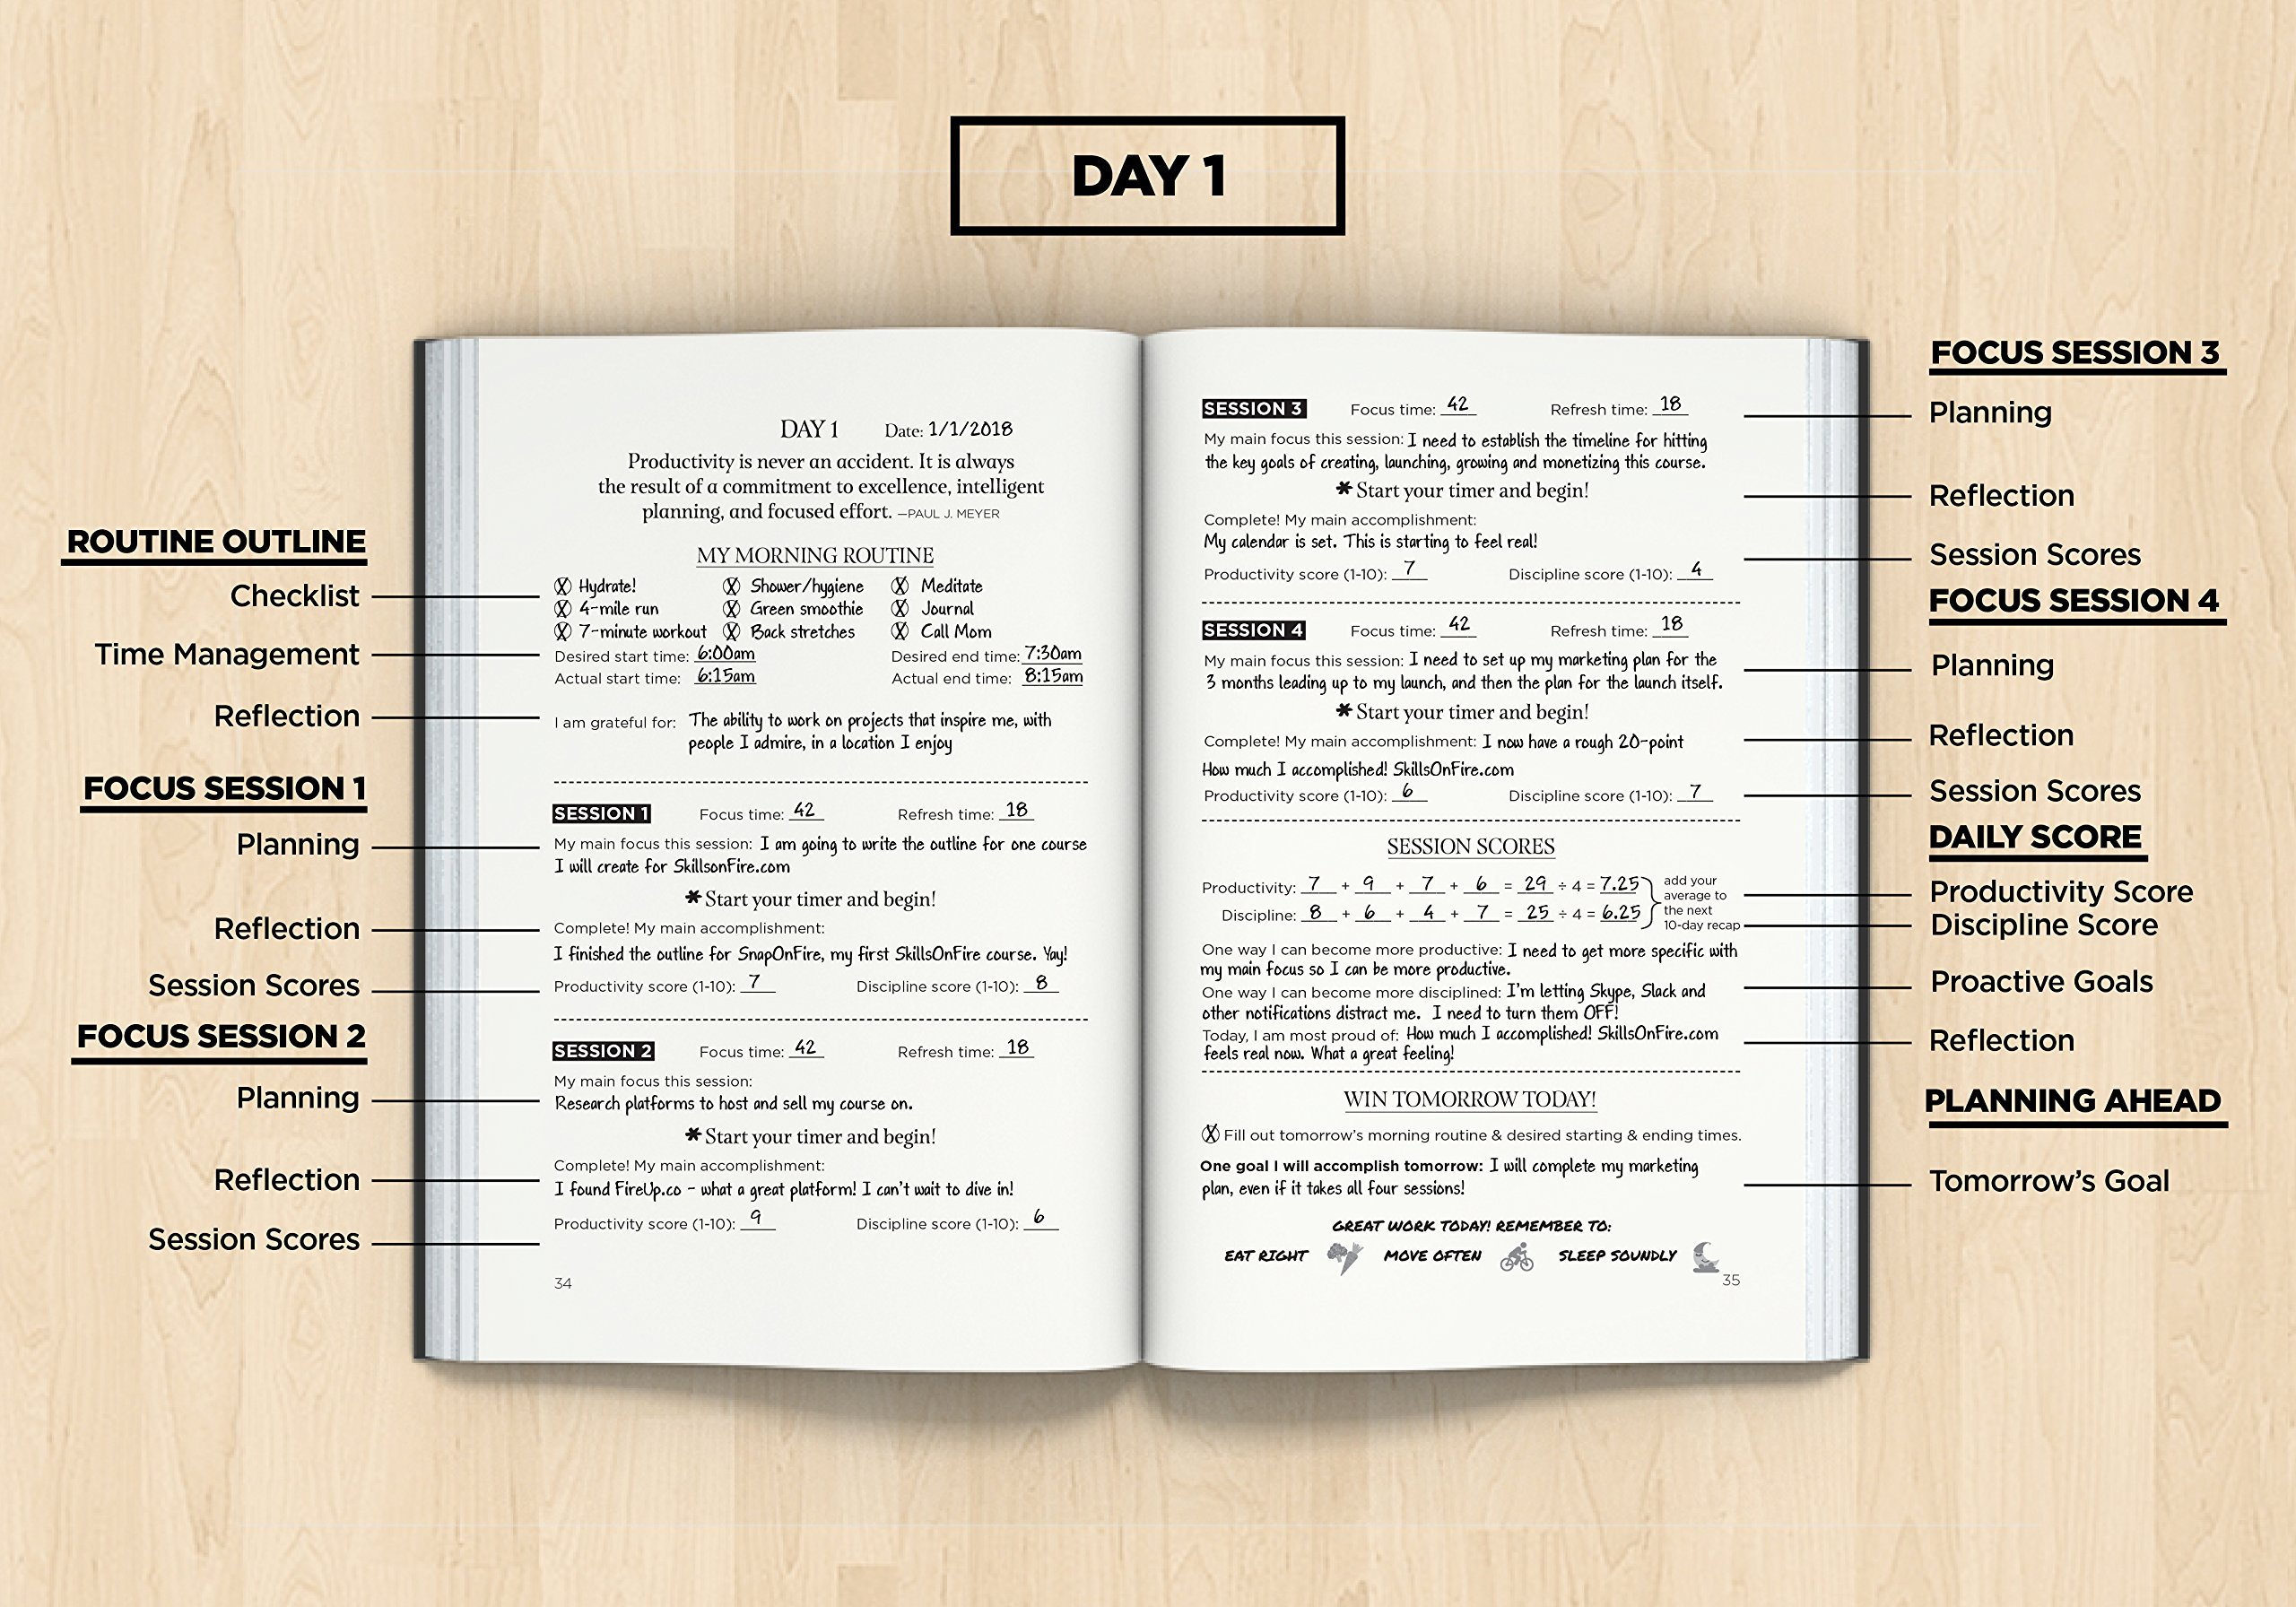 The Mastery Journal - The Best Daily Planner for mastering productivity, discipline and focus in 100 days! Hardcover, Non Dated - 1 Year Guarantee by The Mastery Journal (Image #6)